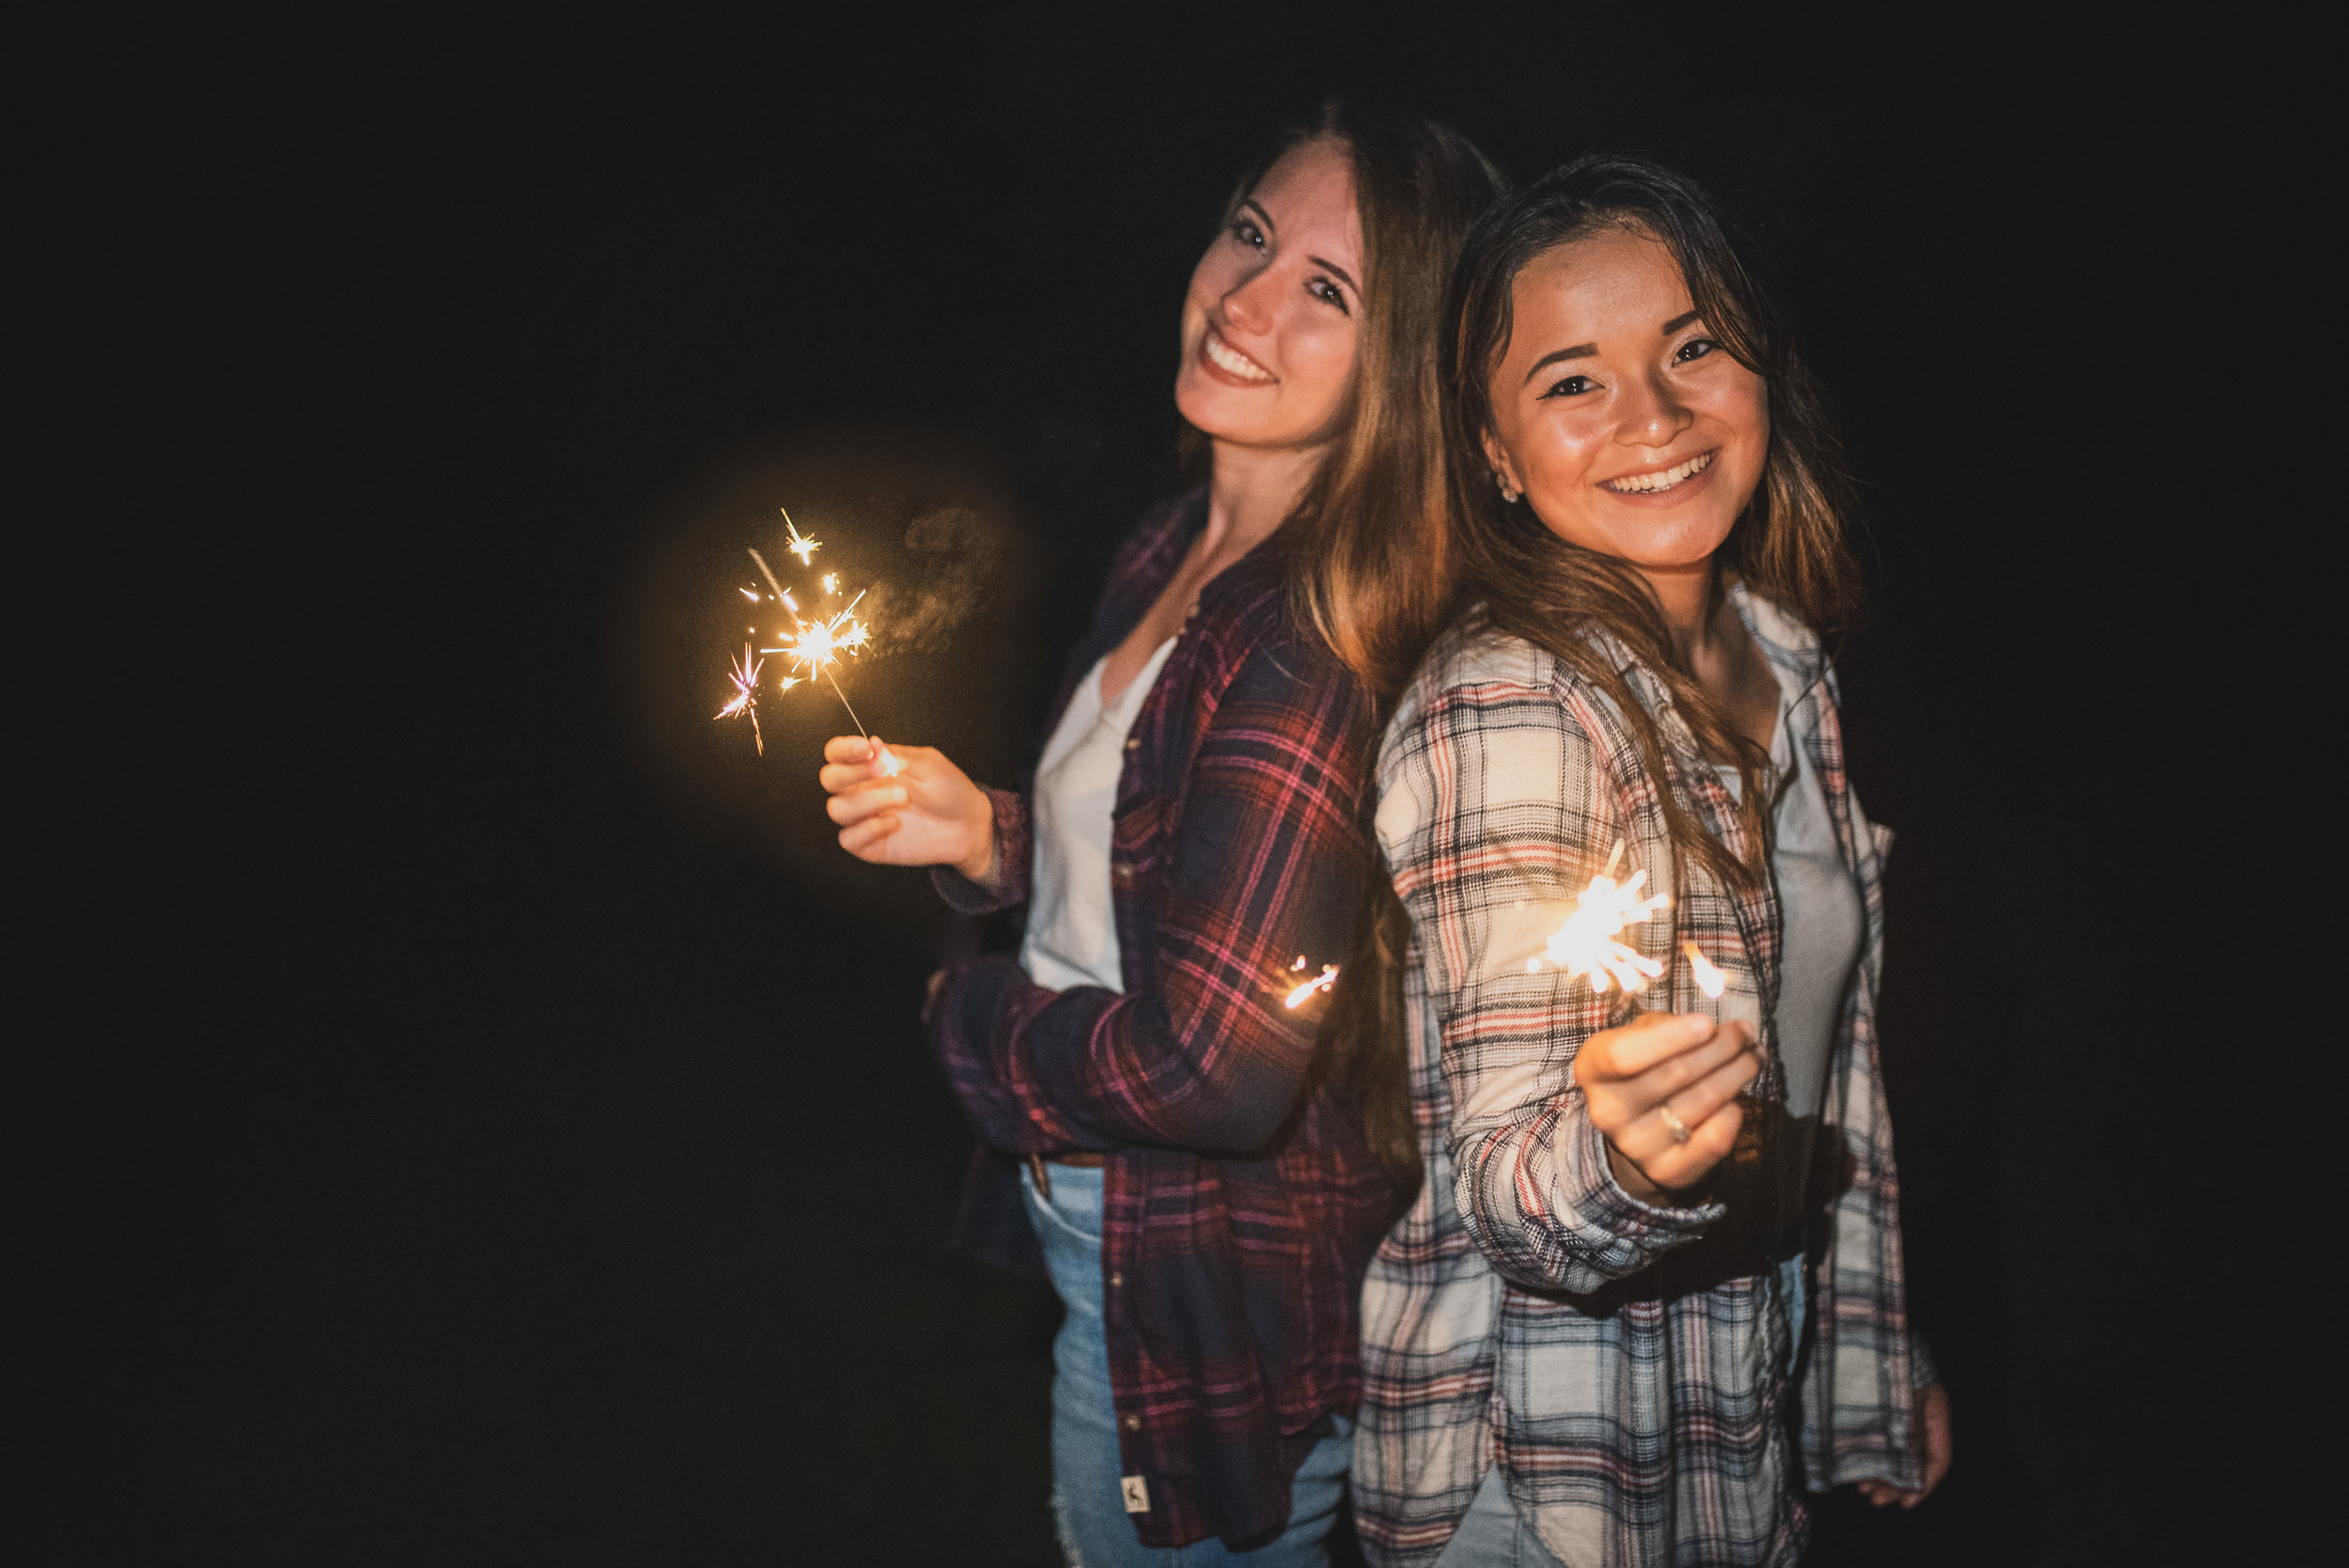 Sunsets_And_Sparklers-18.jpg